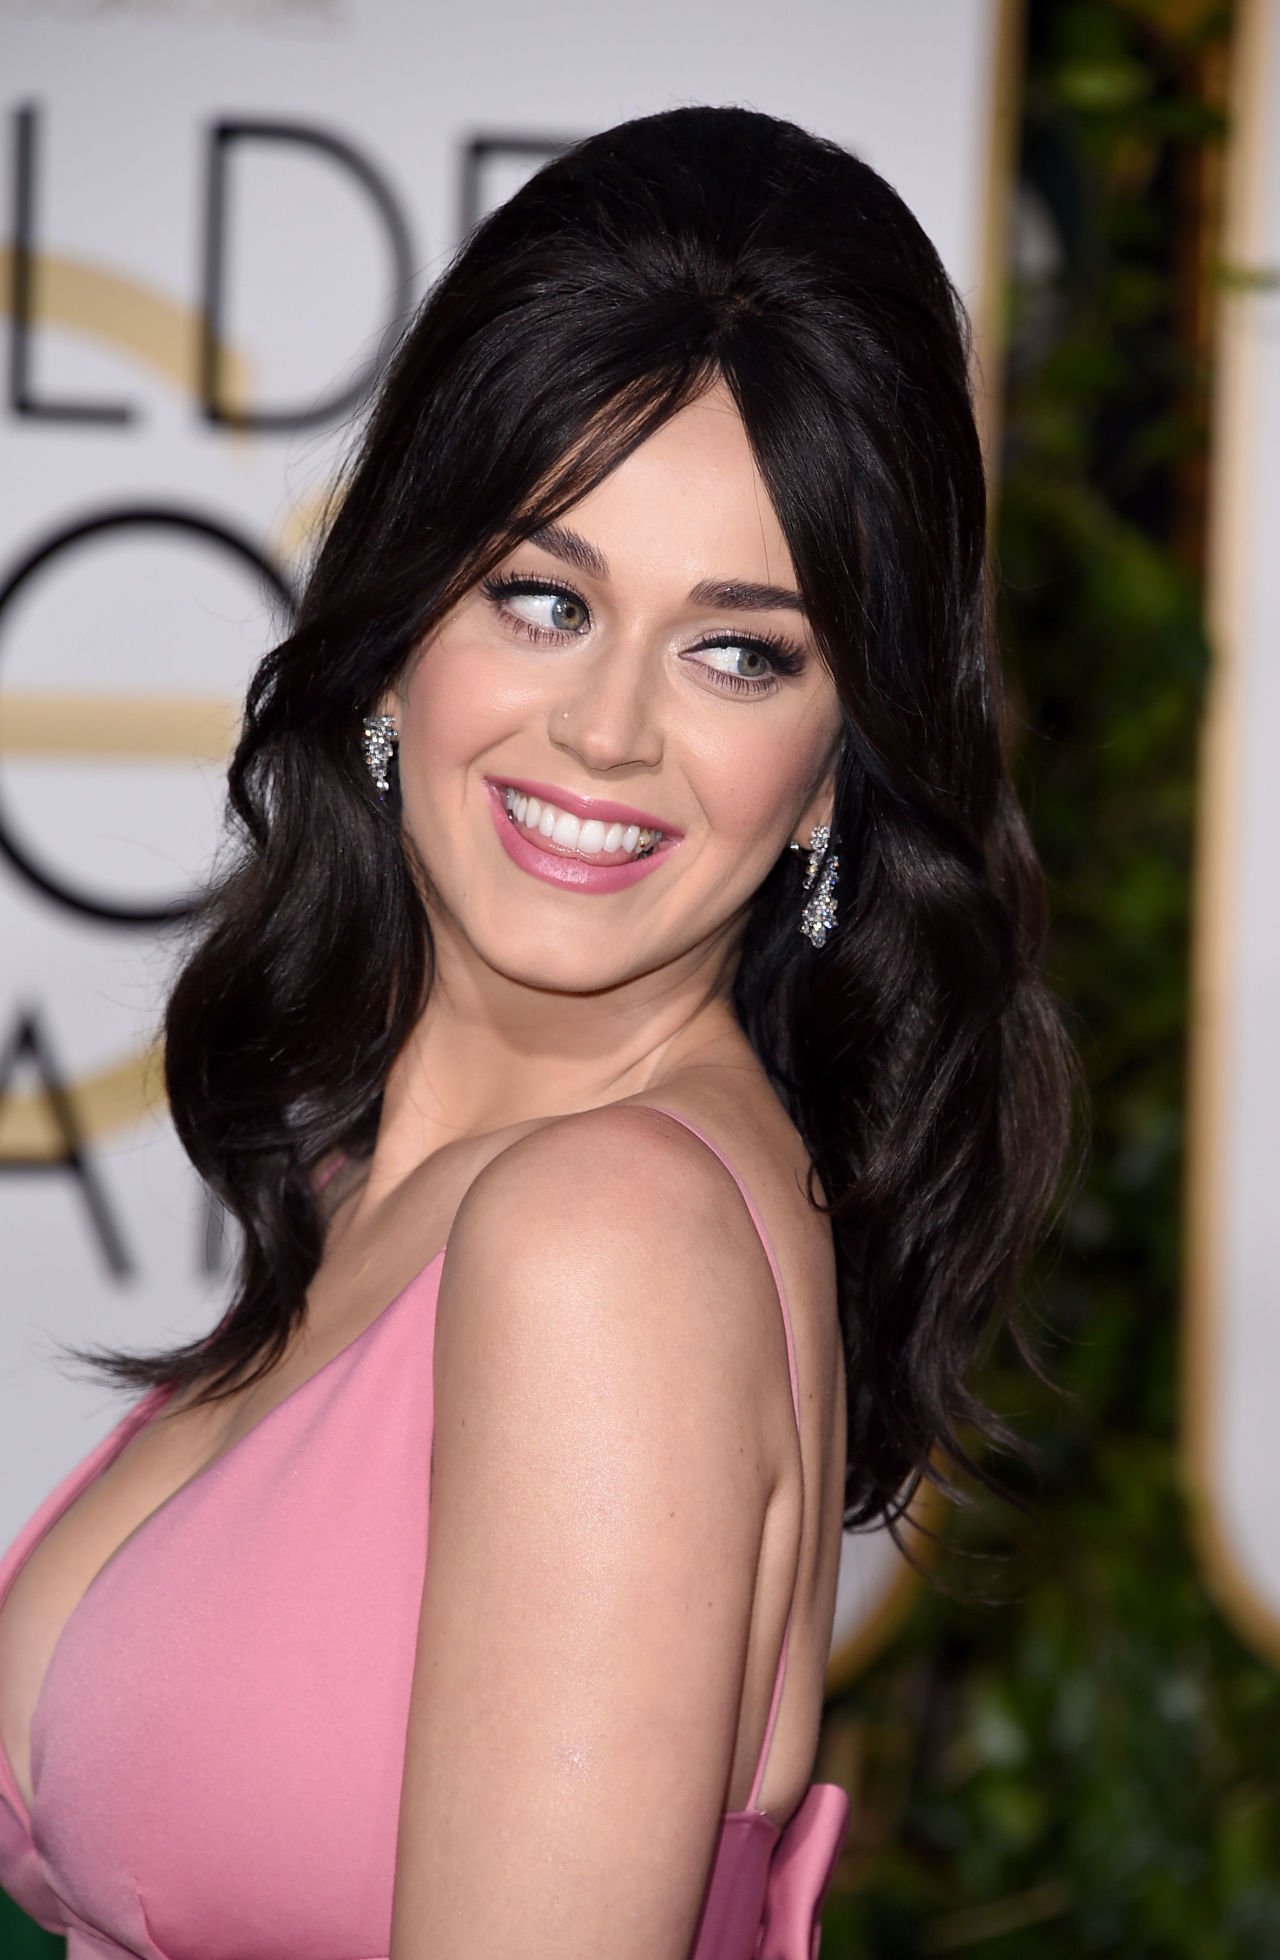 Katy Perry | Disney Wiki | Fandom powered by Wikia